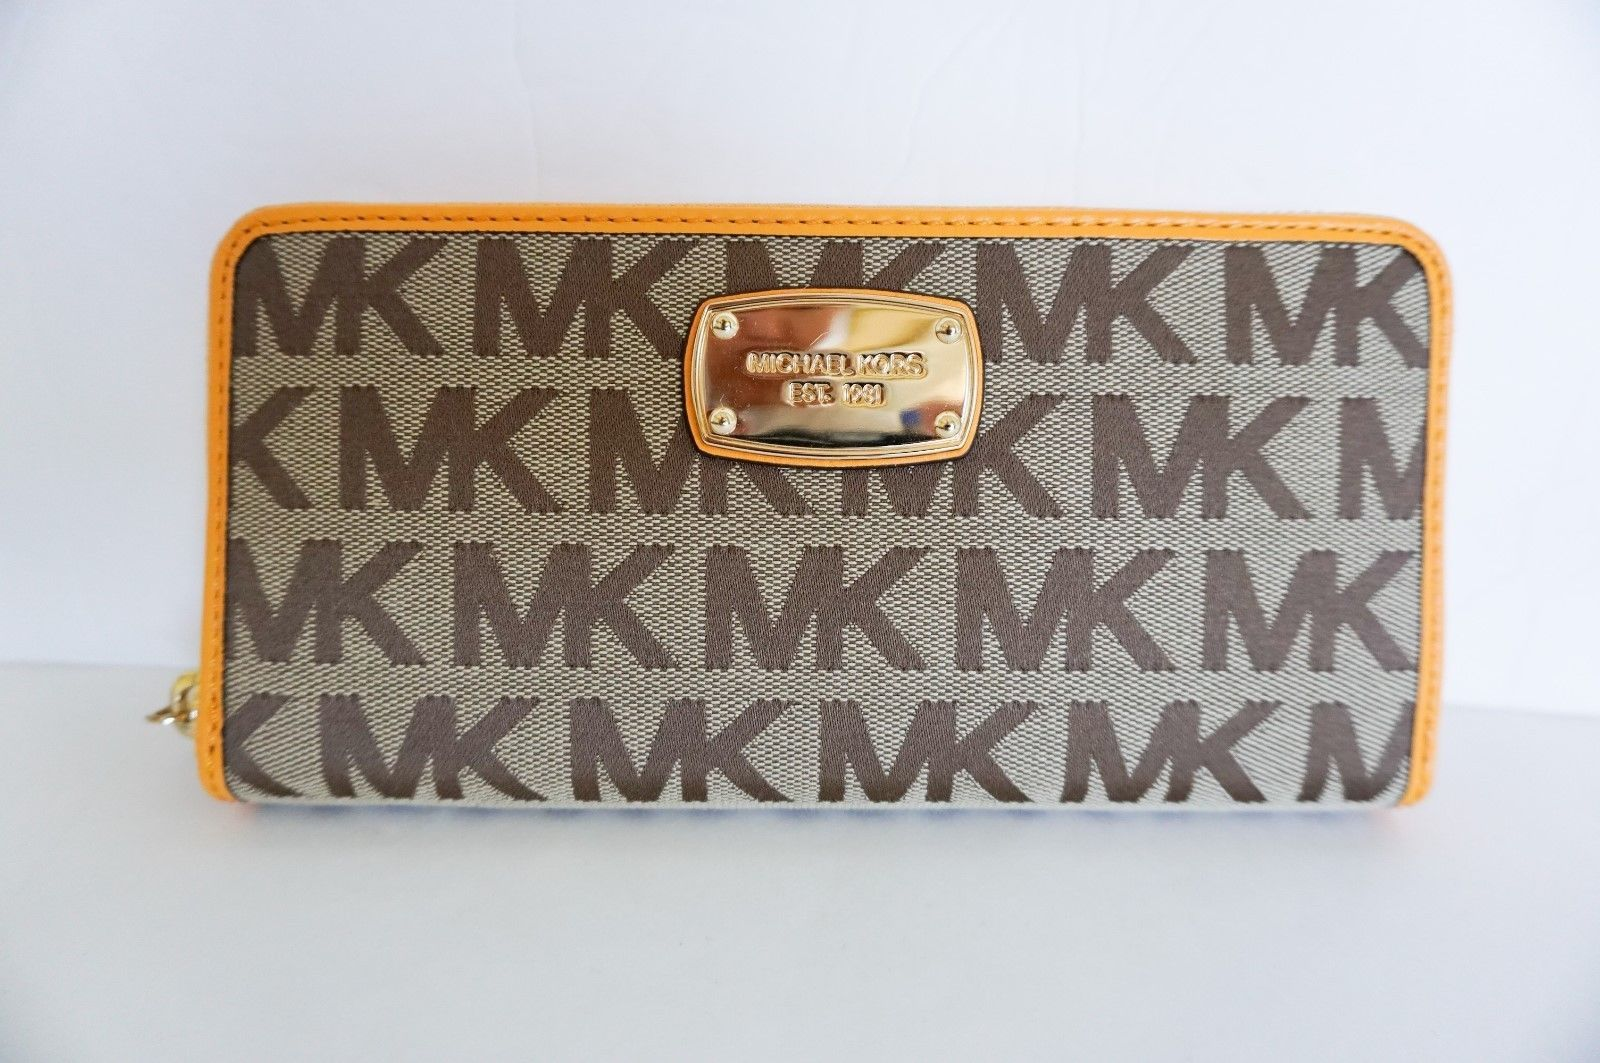 b663eac43cb2 57. 57. Previous. MICHAEL KORS JET SET ITEM ZIP AROUND CONTINENTAL WALLET  SIGNATURE BEIGE YELLOW · MICHAEL ...